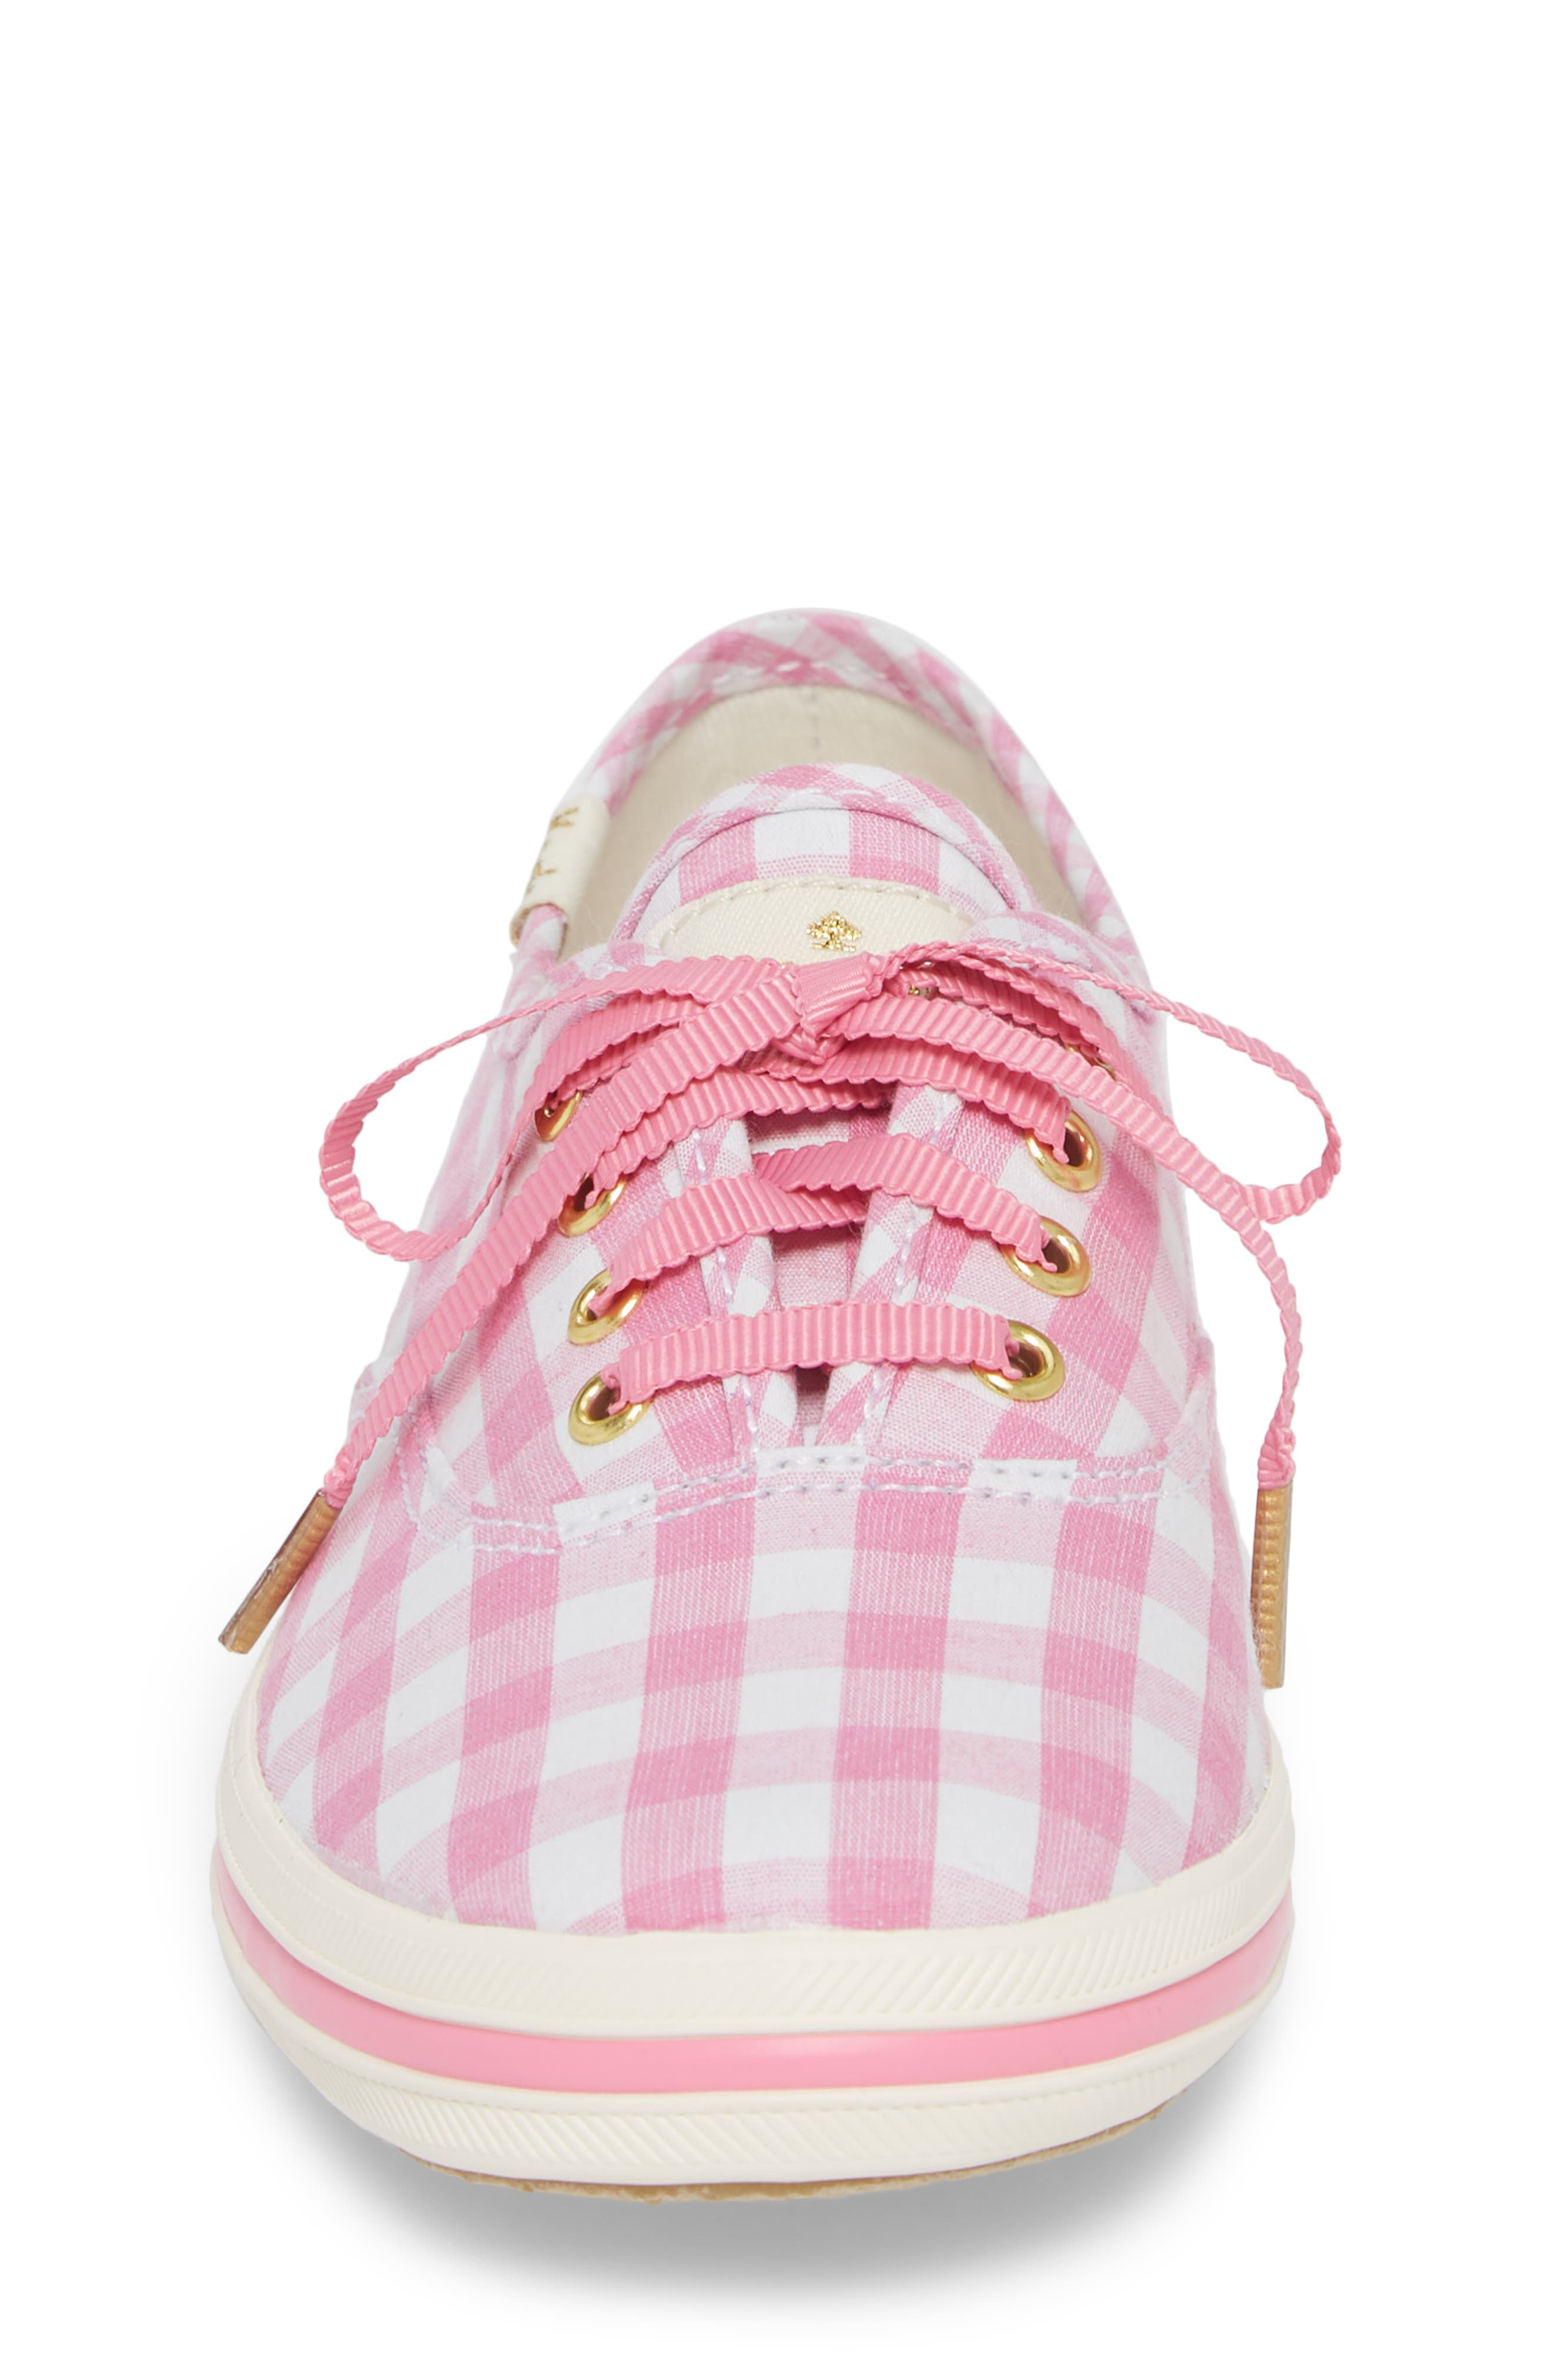 x kate spade new york champion gingham lace-up shoe,                             Alternate thumbnail 4, color,                             650